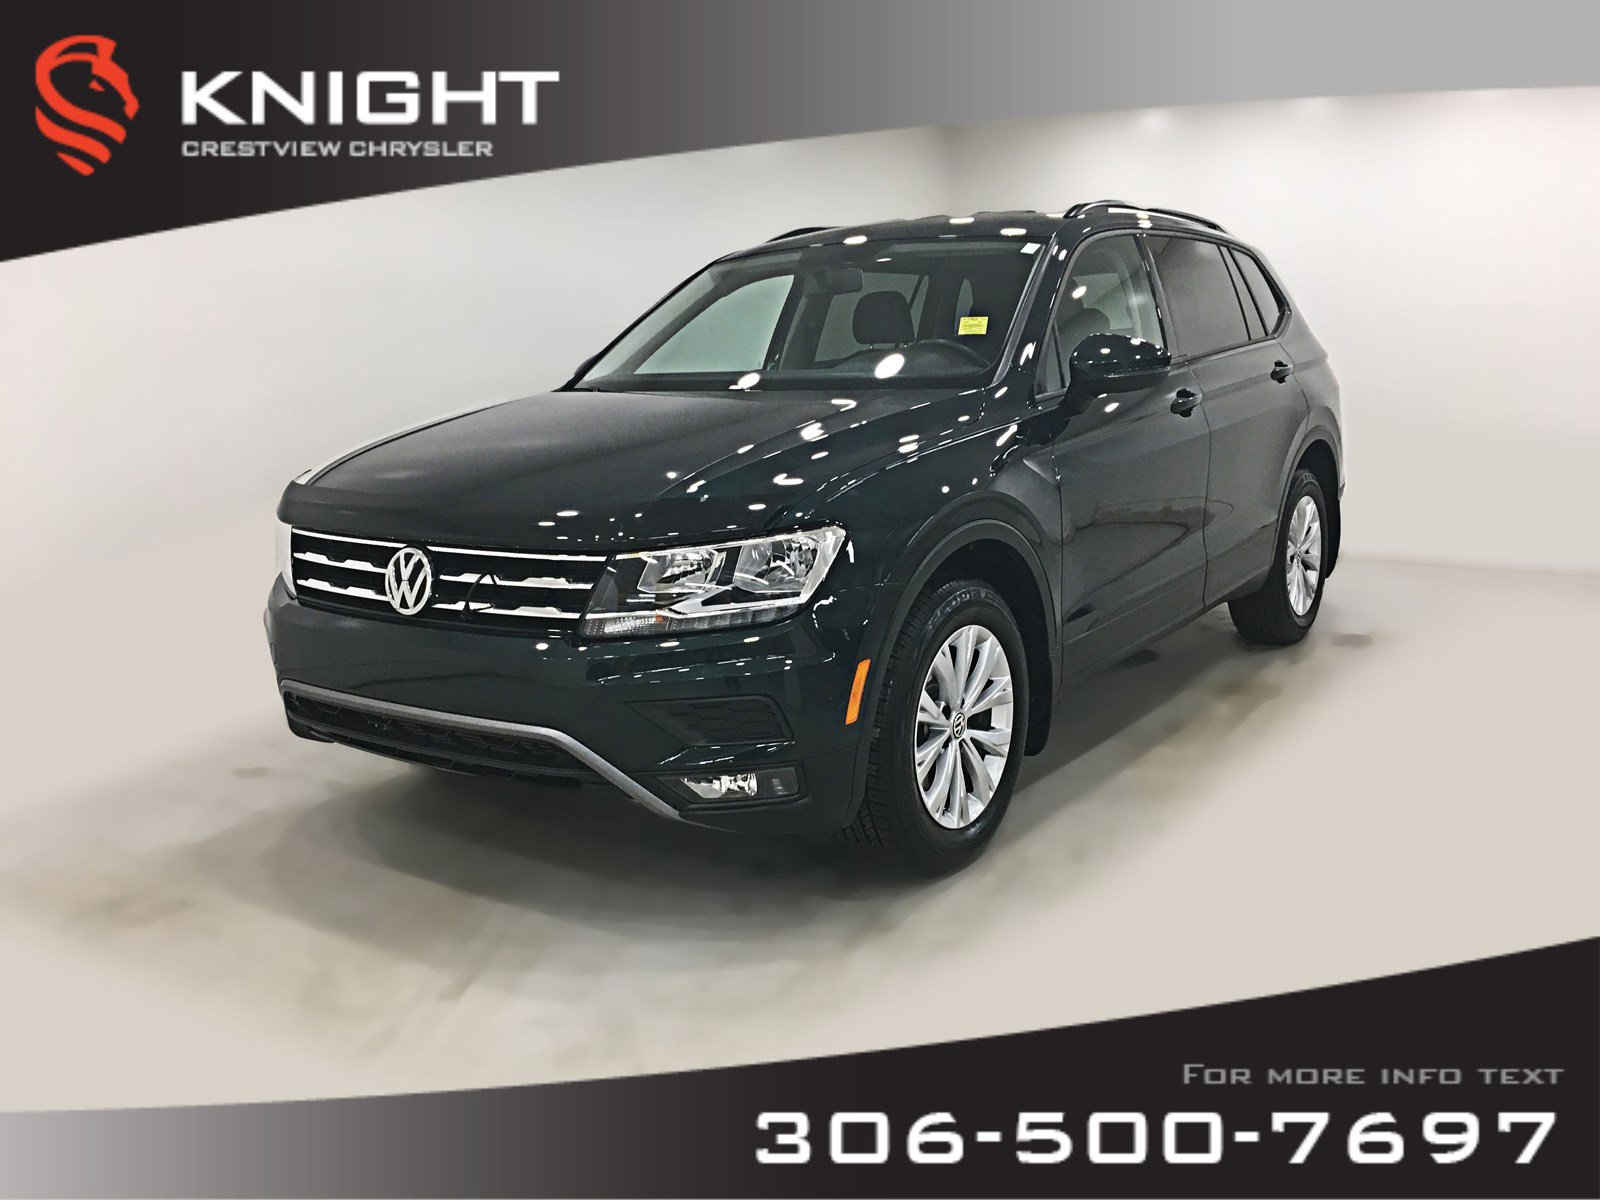 Certified Pre-Owned 2018 Volkswagen Tiguan Comfortline AWD | Remote Start | Back-Up Cam| Heated Seats